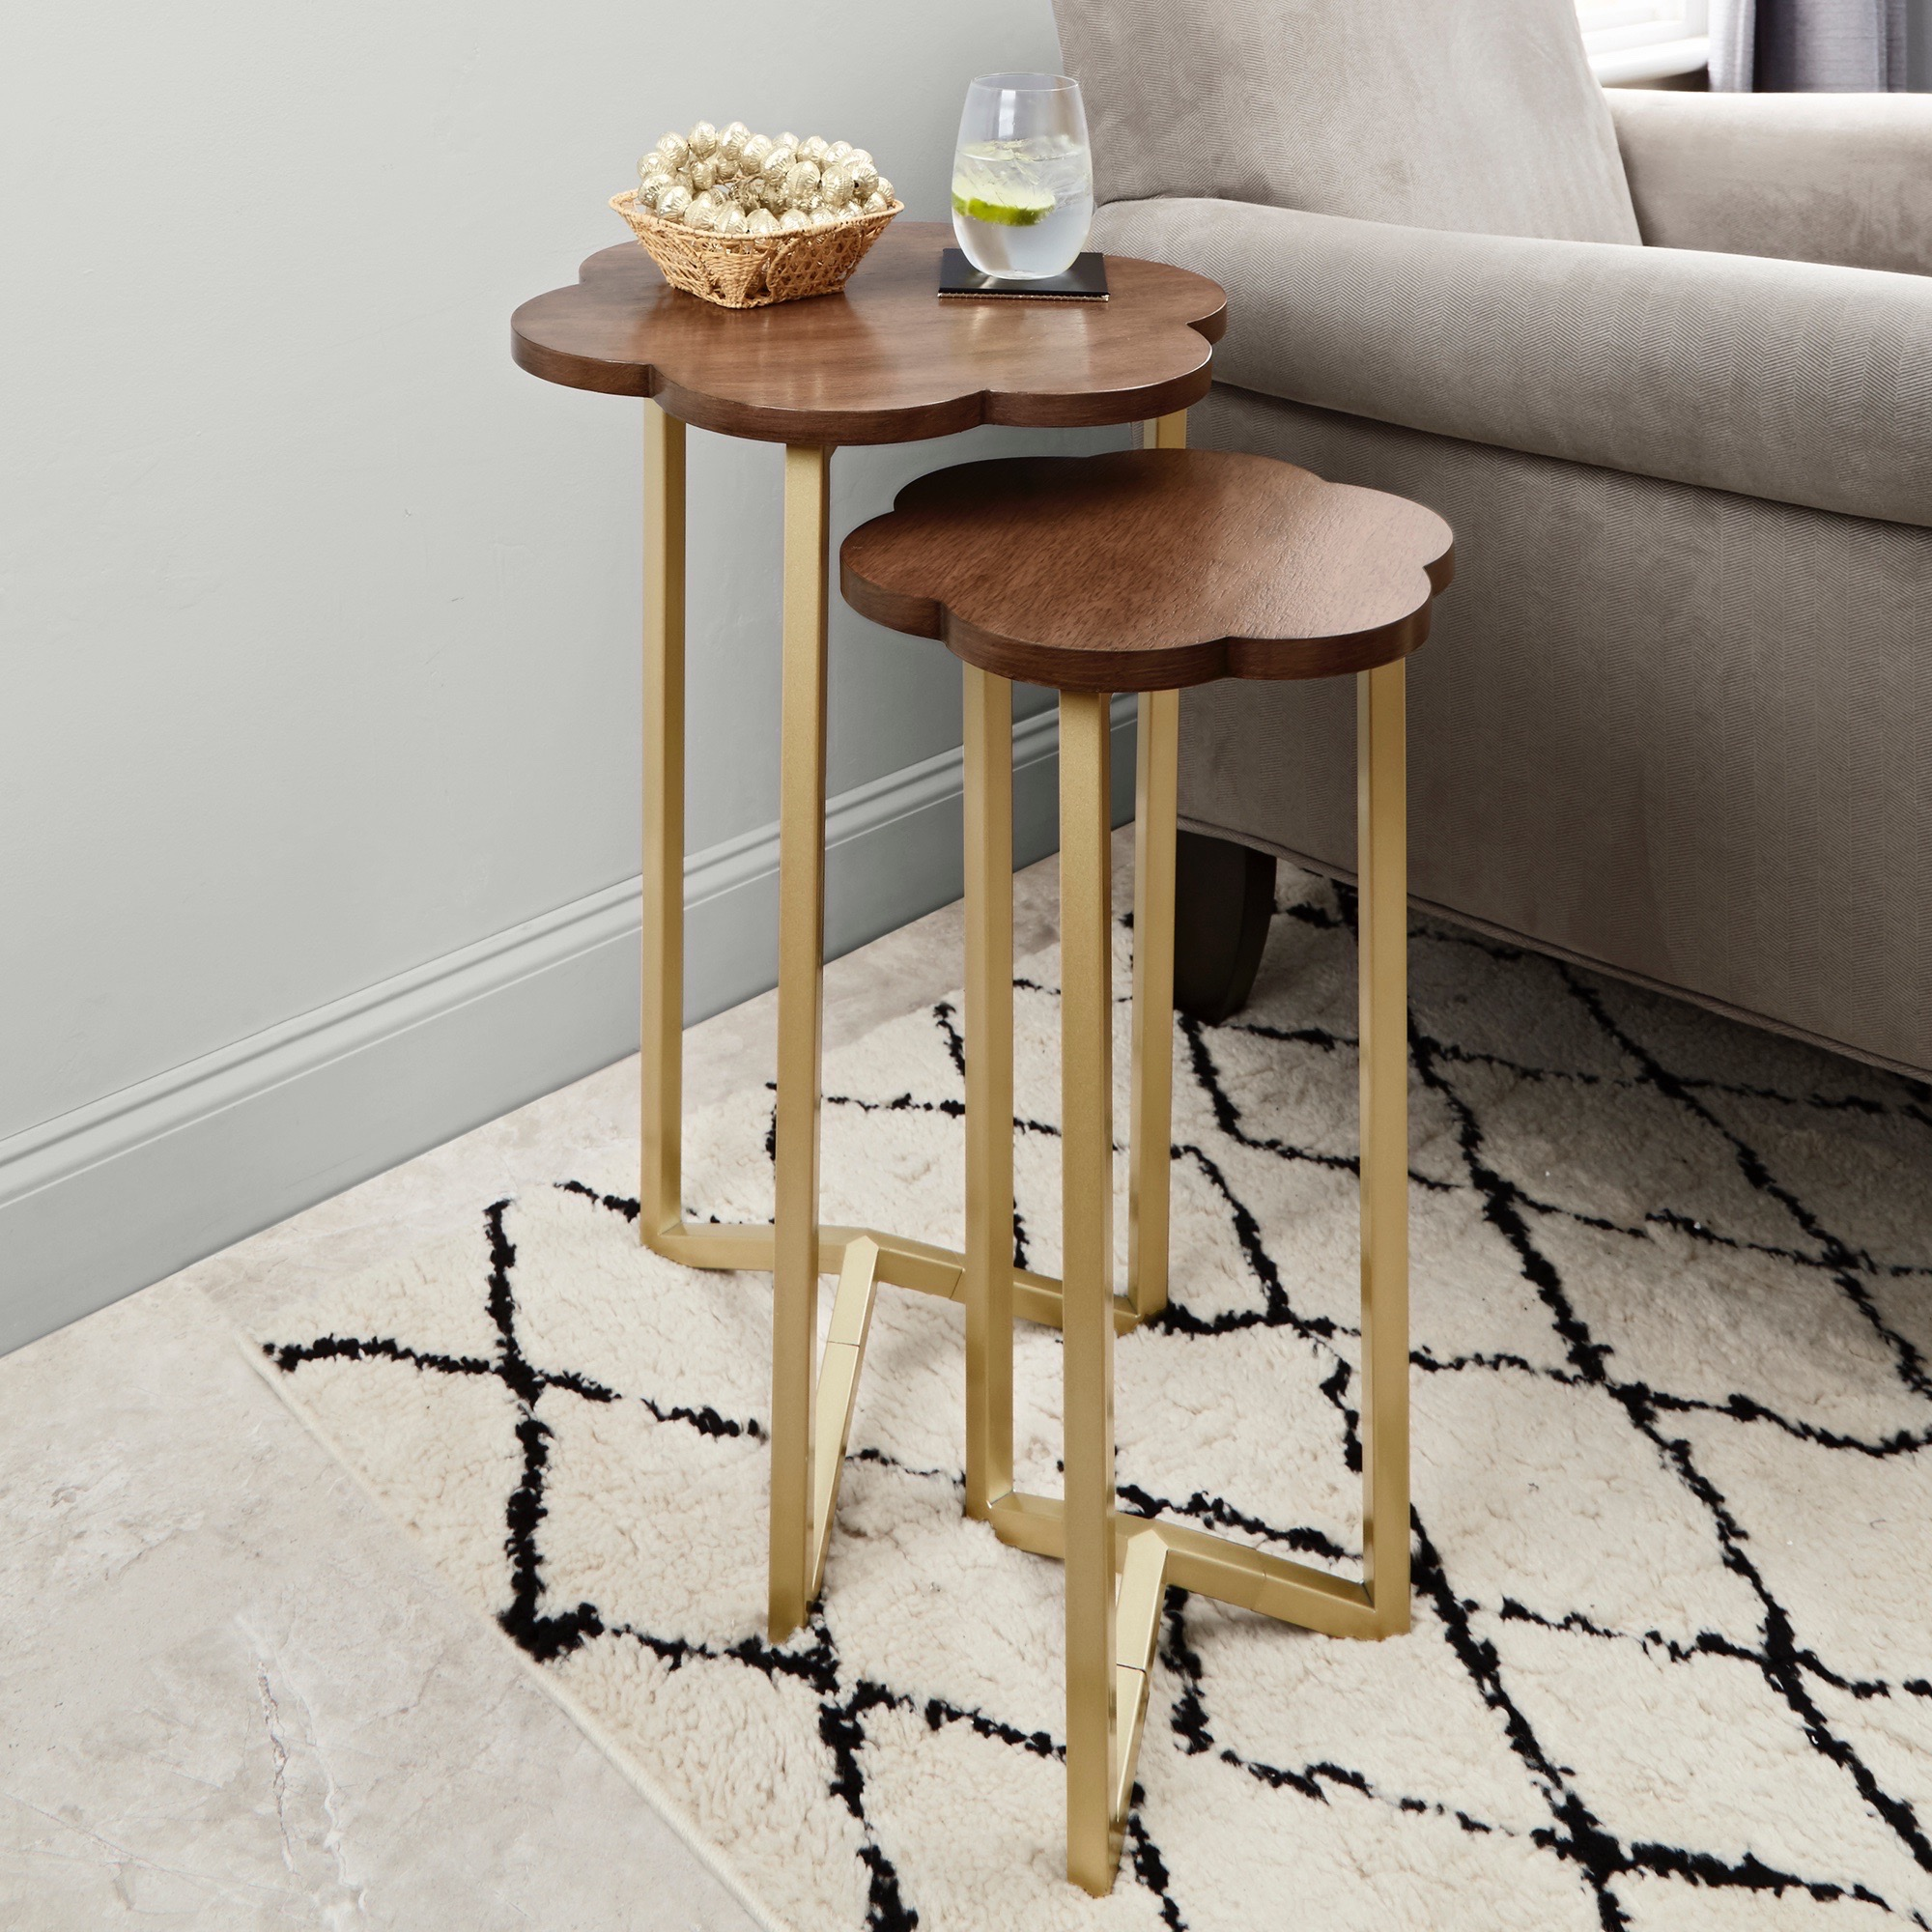 set nesting table living room accent gold wood top end side details home furniture tables red lamp small rattan pier one imports clearance acrylic console lamps mainstays coffee